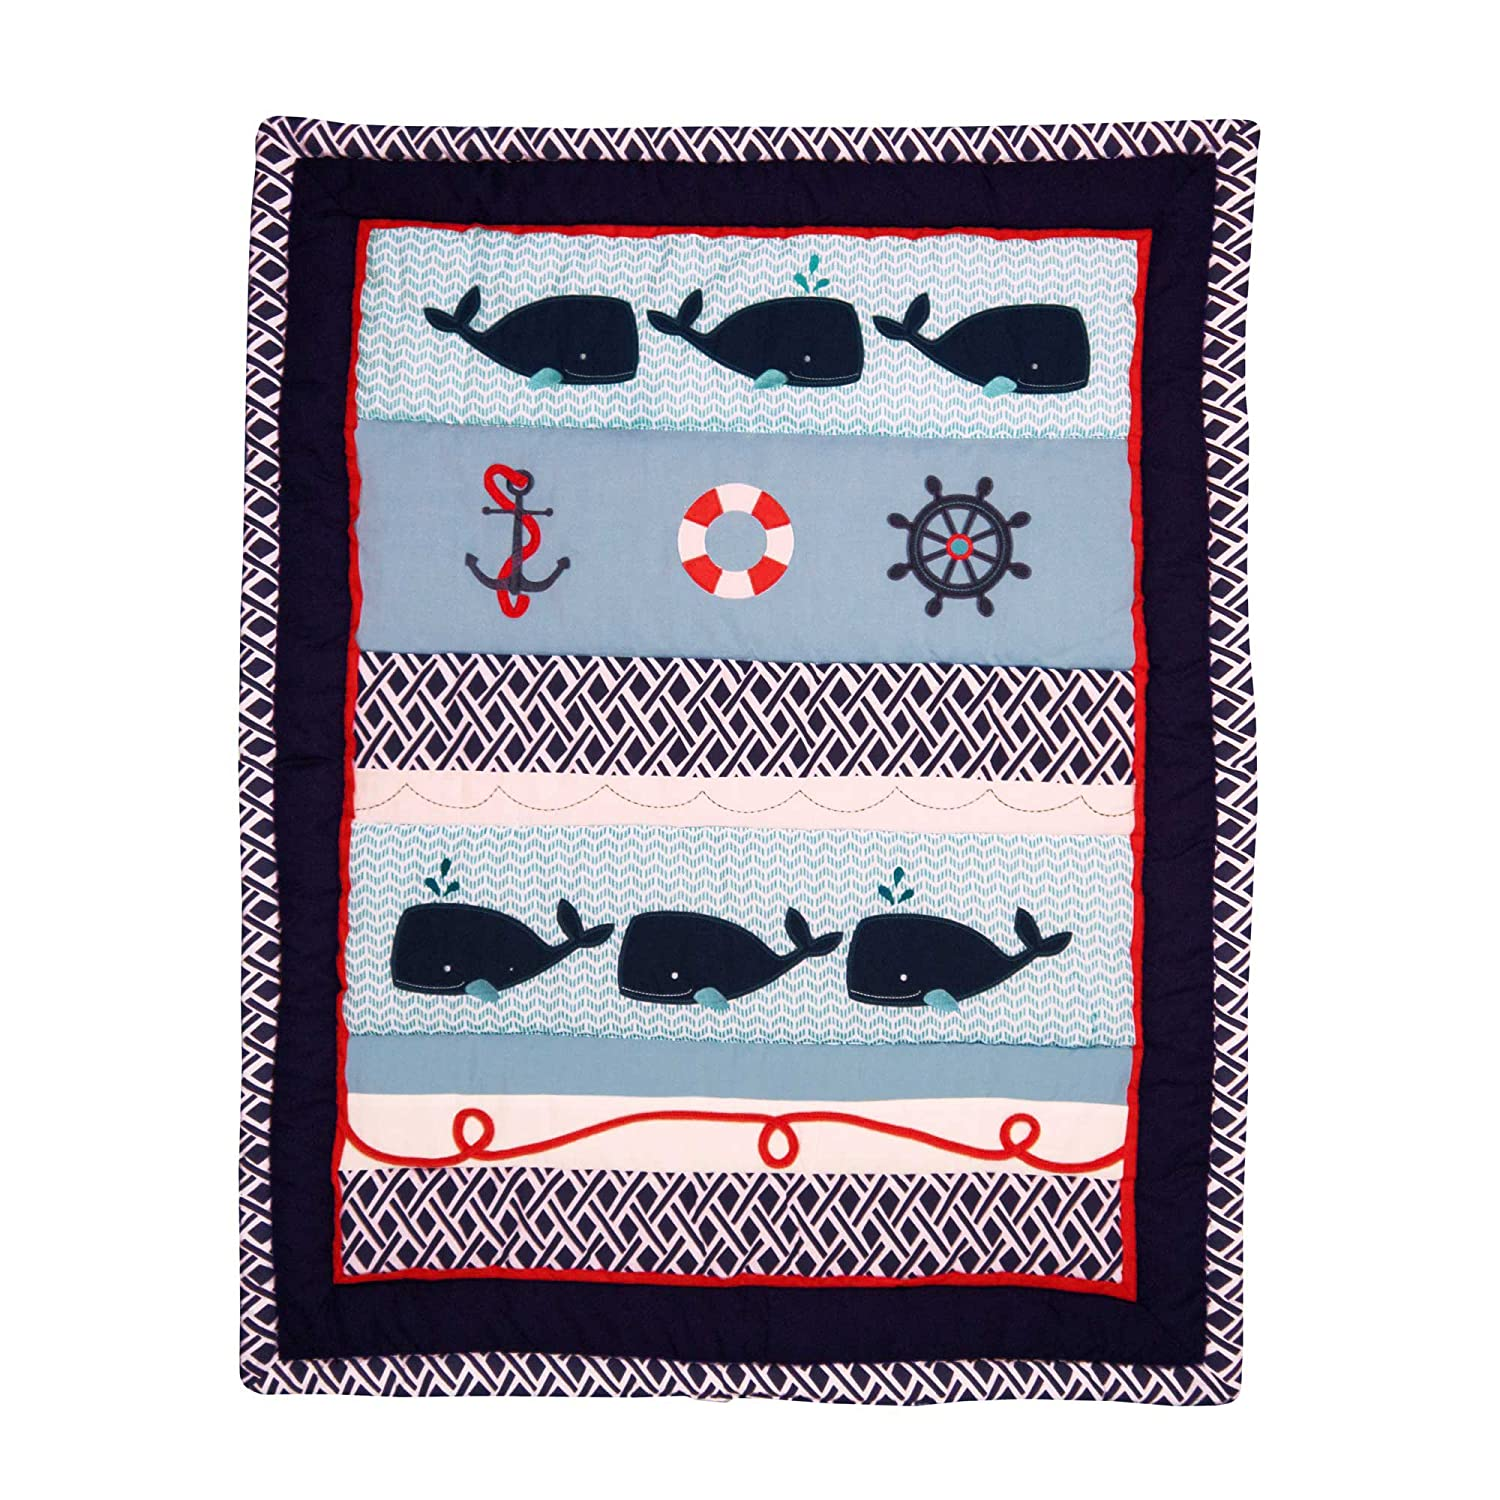 Nautica crib bedding whale - Amazon Com Whale Of A Tale 4 Piece Baby Crib Bedding Set By Nautica Kids Cell Phones Accessories